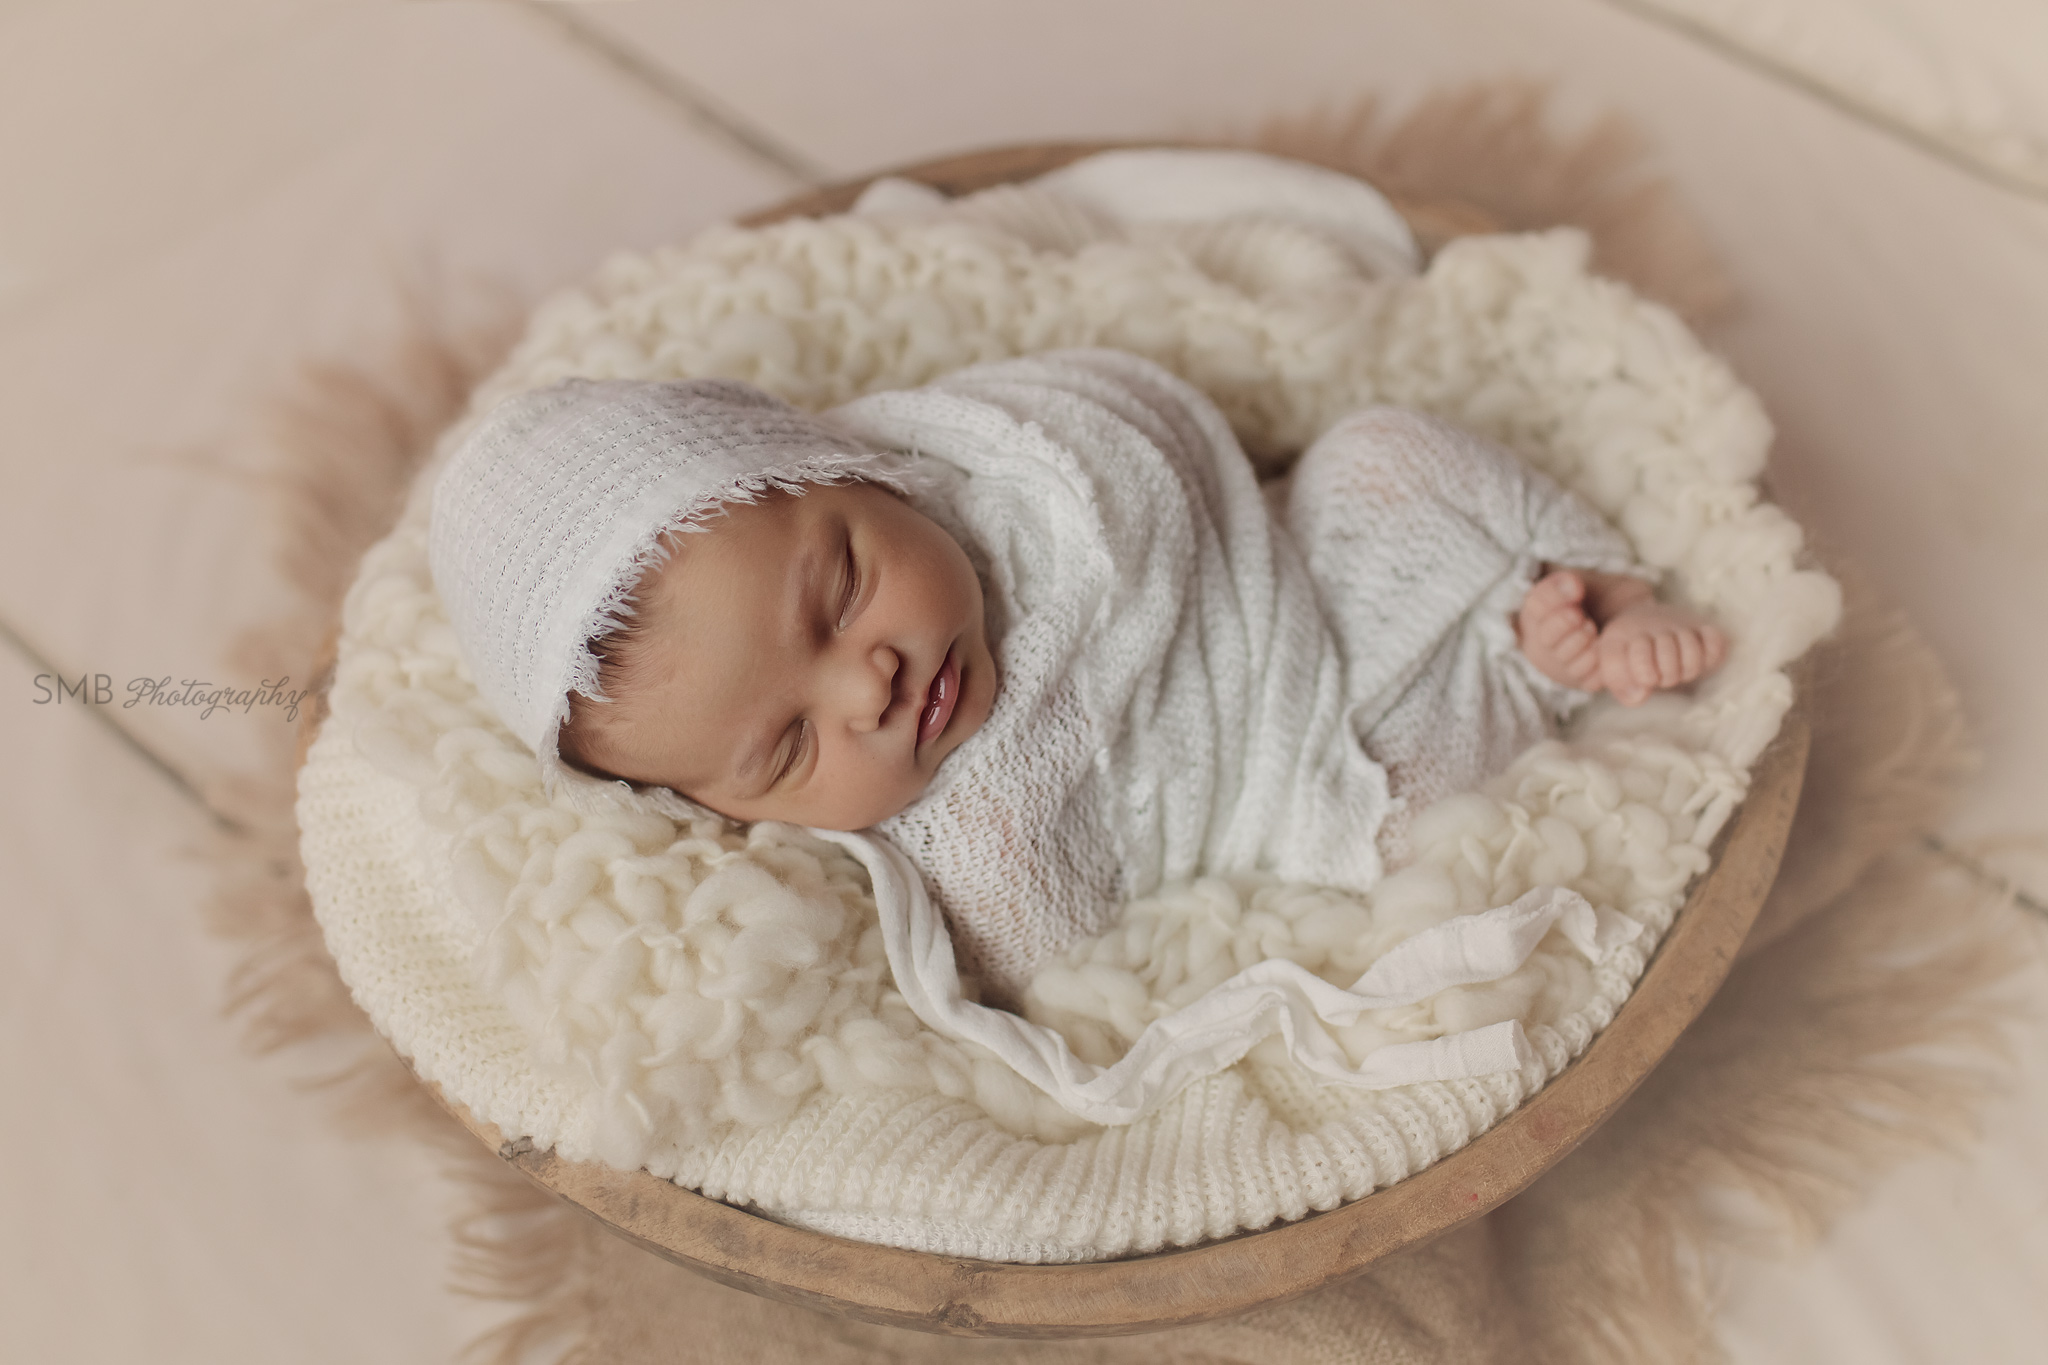 Baby wrapped in cream in a large wood bowl